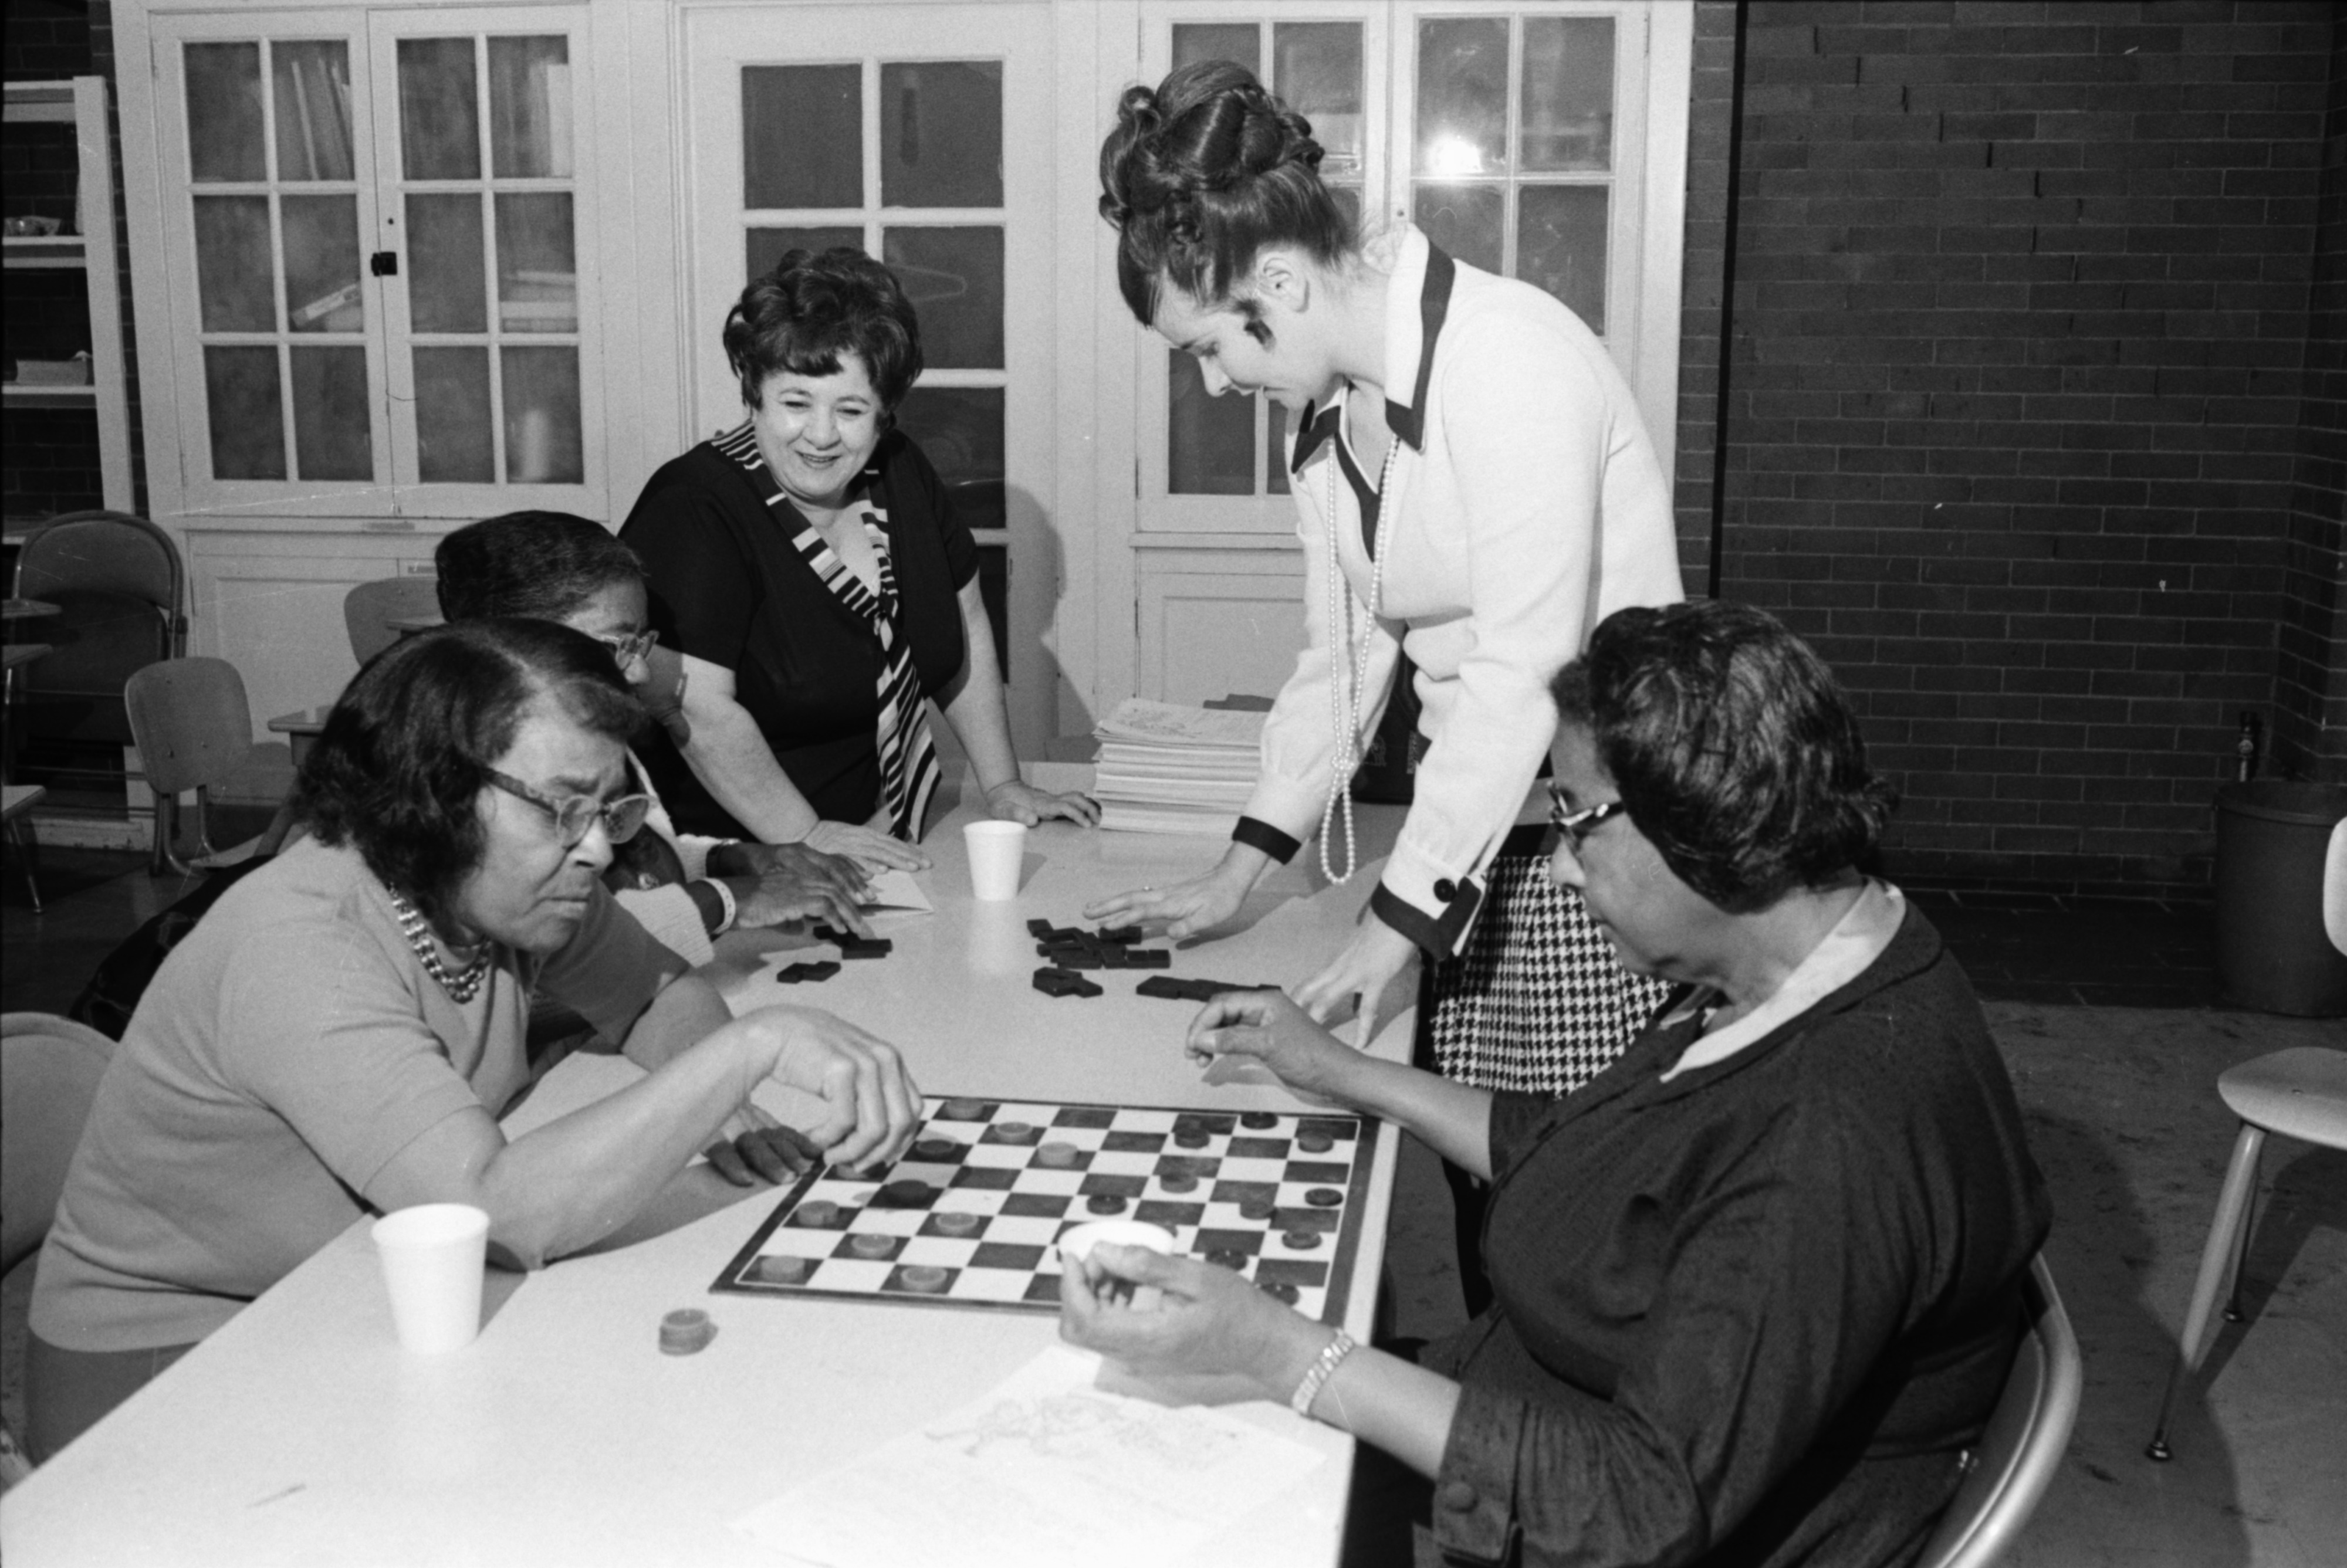 Recreation Department Leads Program for Seniors at Jones School Drop-In Center, November 1970 image